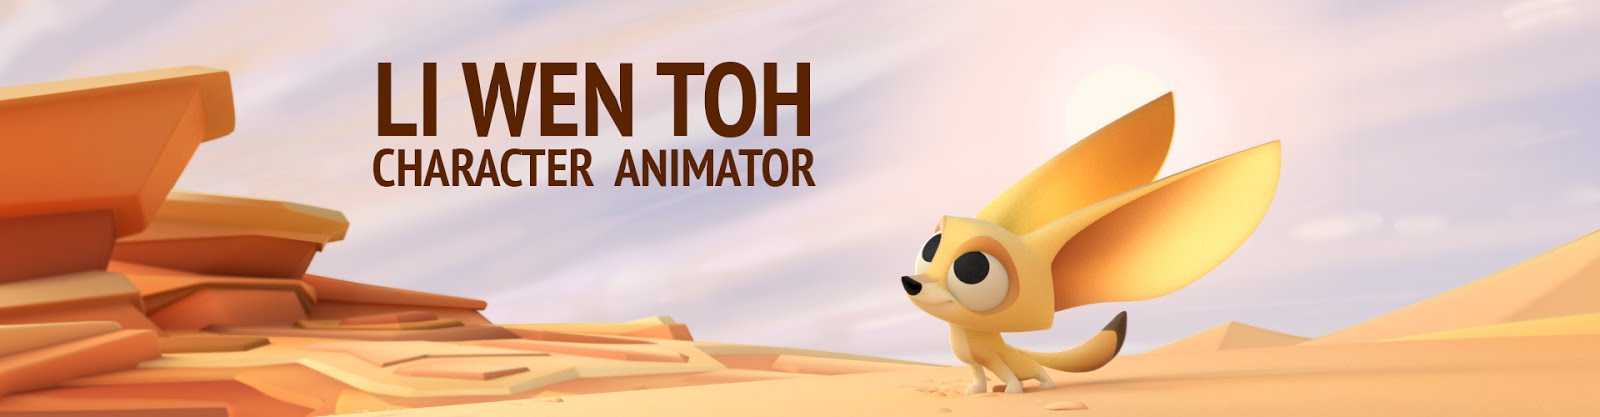 Toh Li Wen's Demoreel and Portfolio